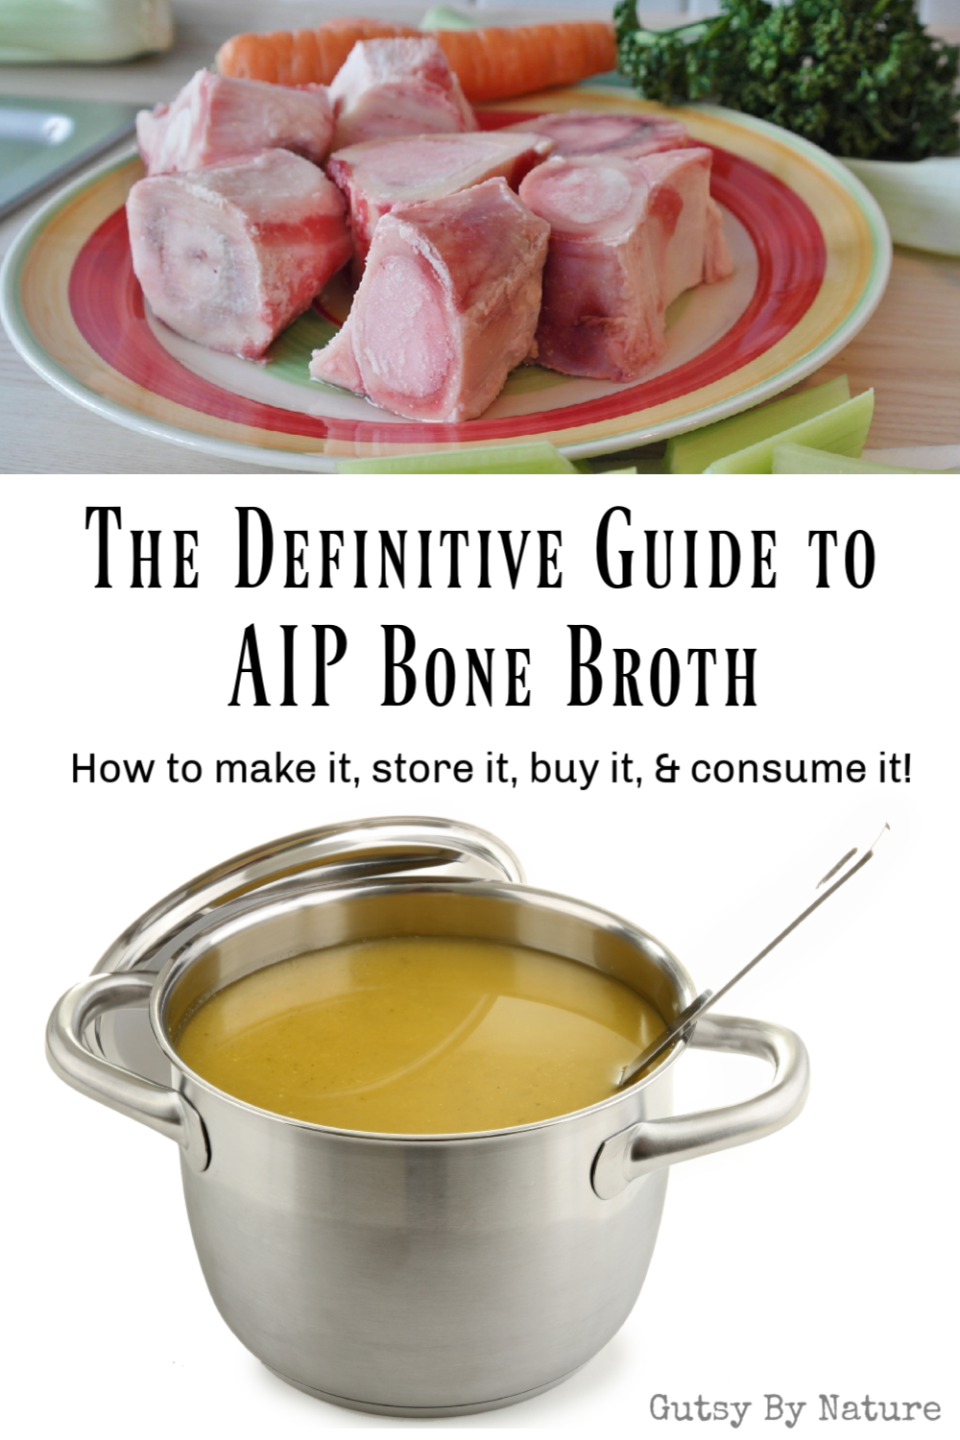 The Definitive Guide to AIP Bone Broth